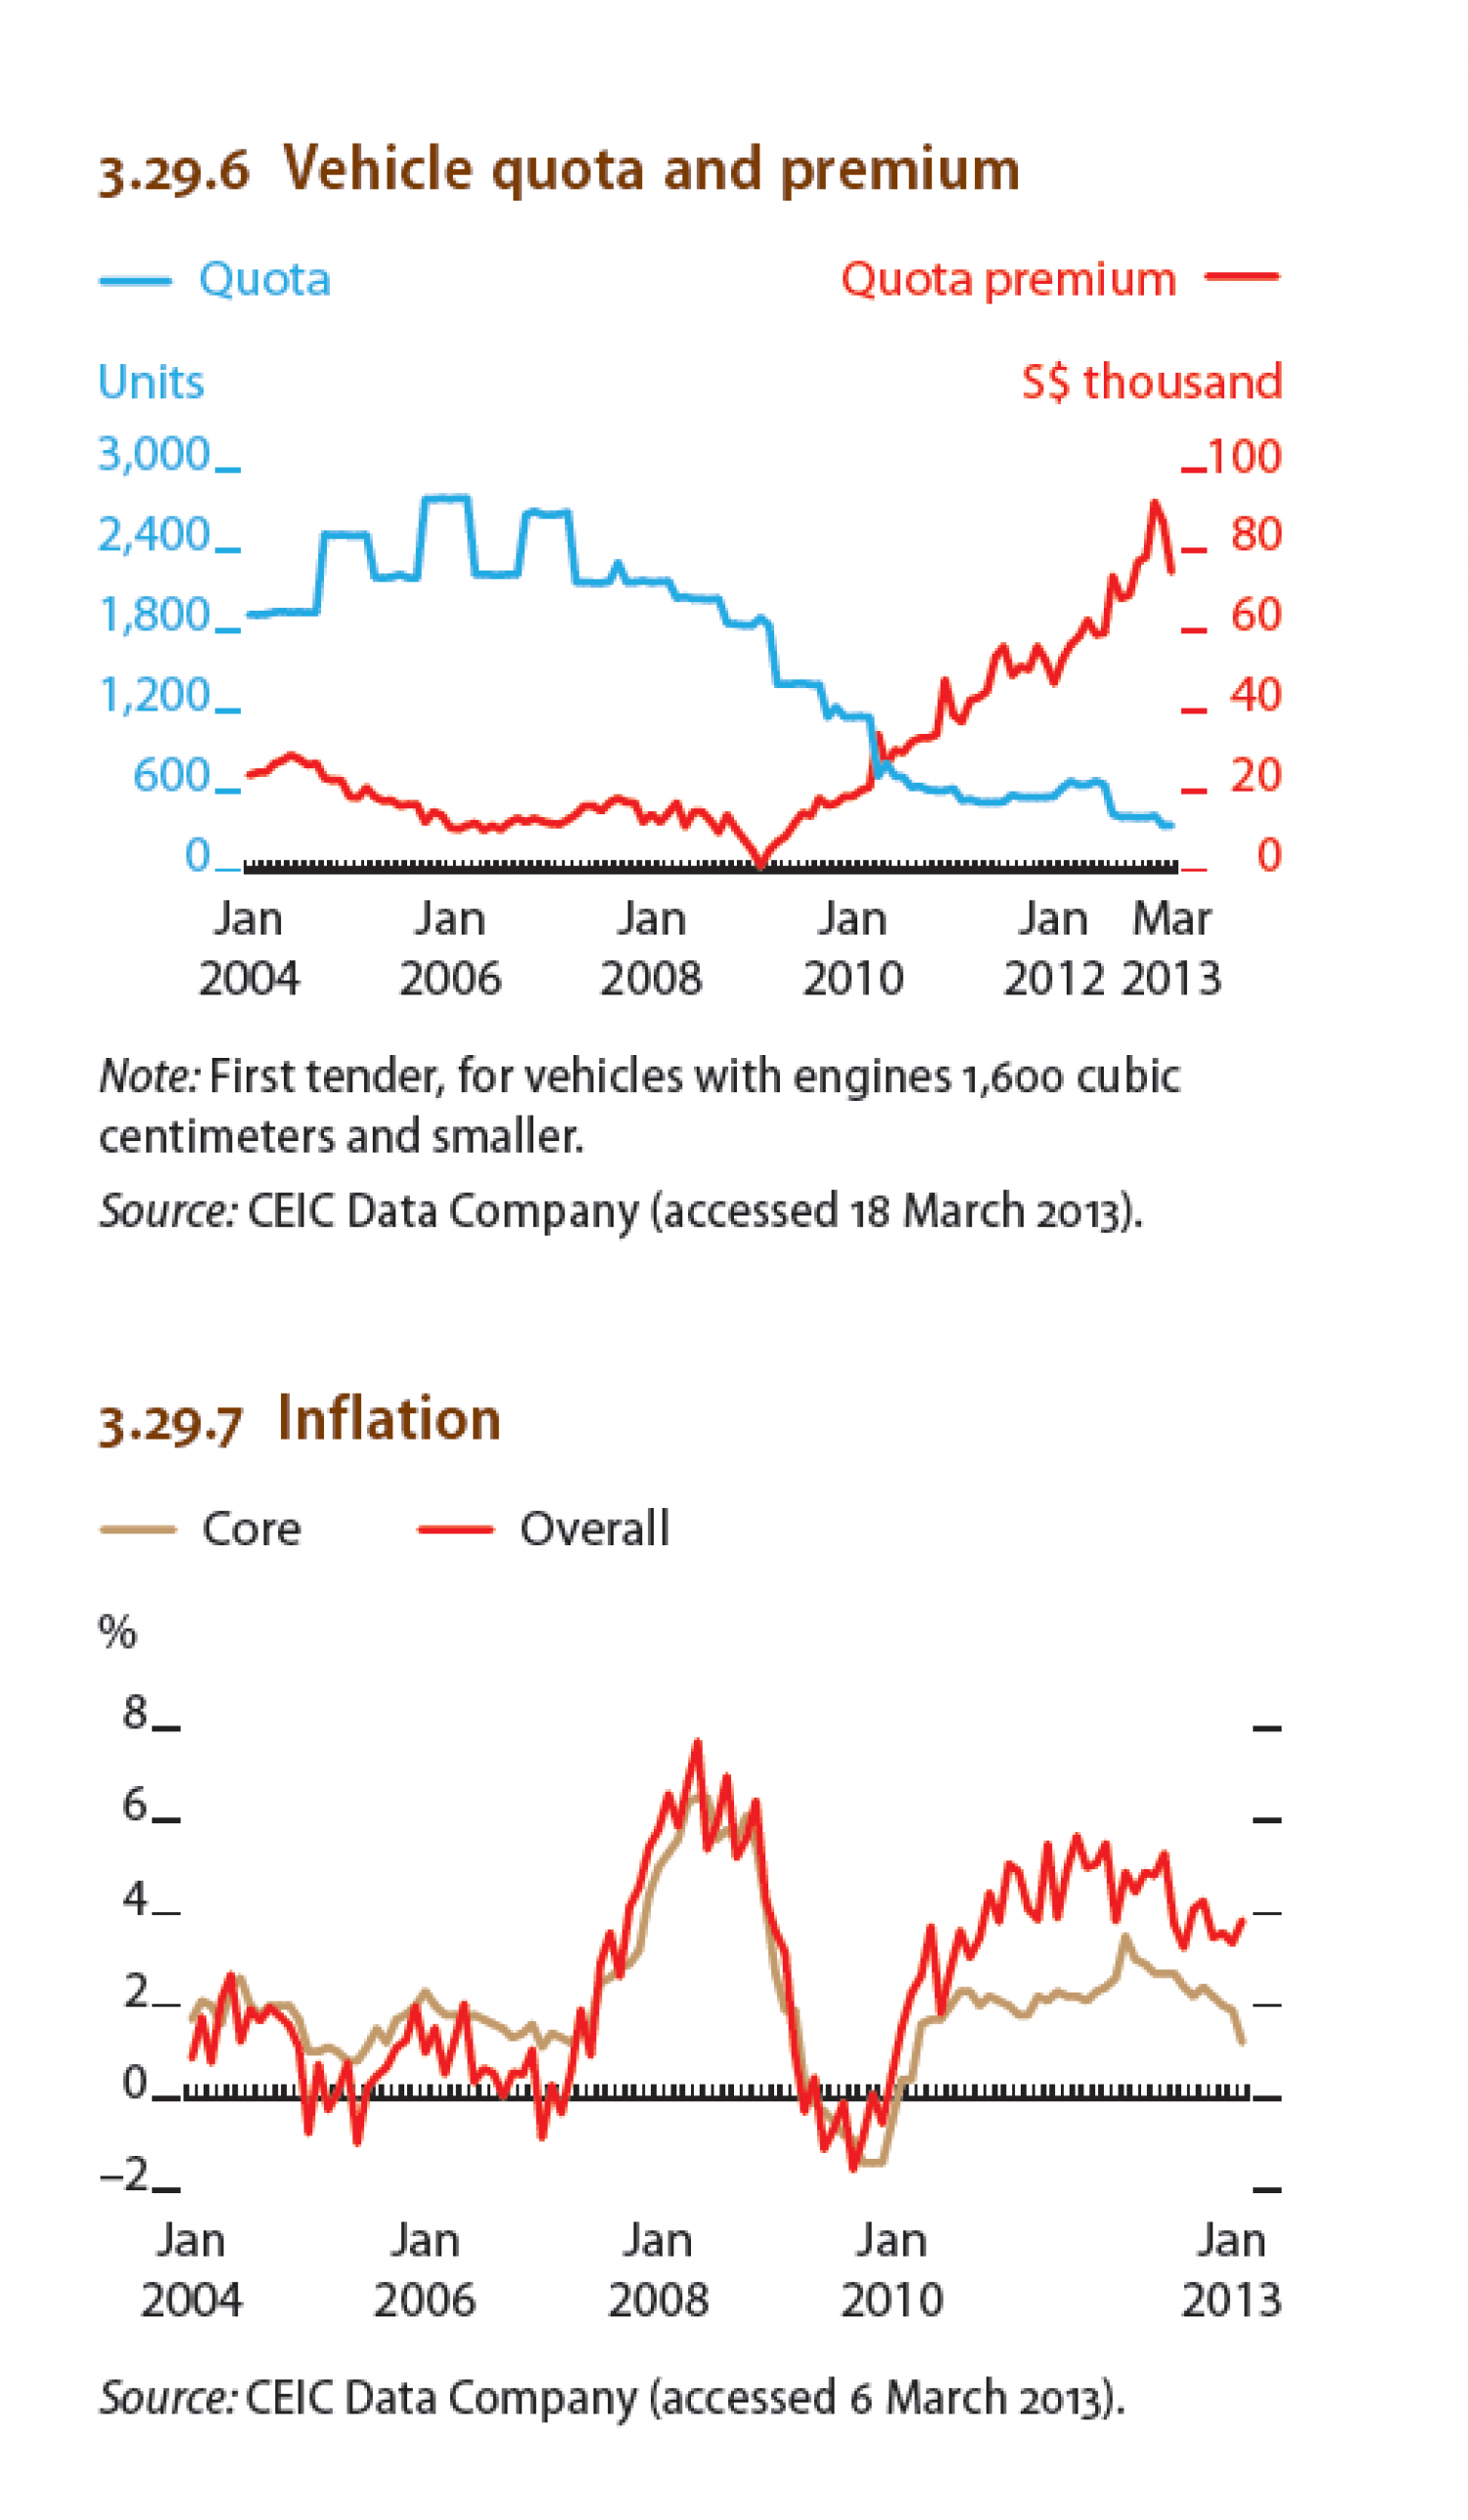 Singapore : Vehicle quota and premium, Inflation Infographic